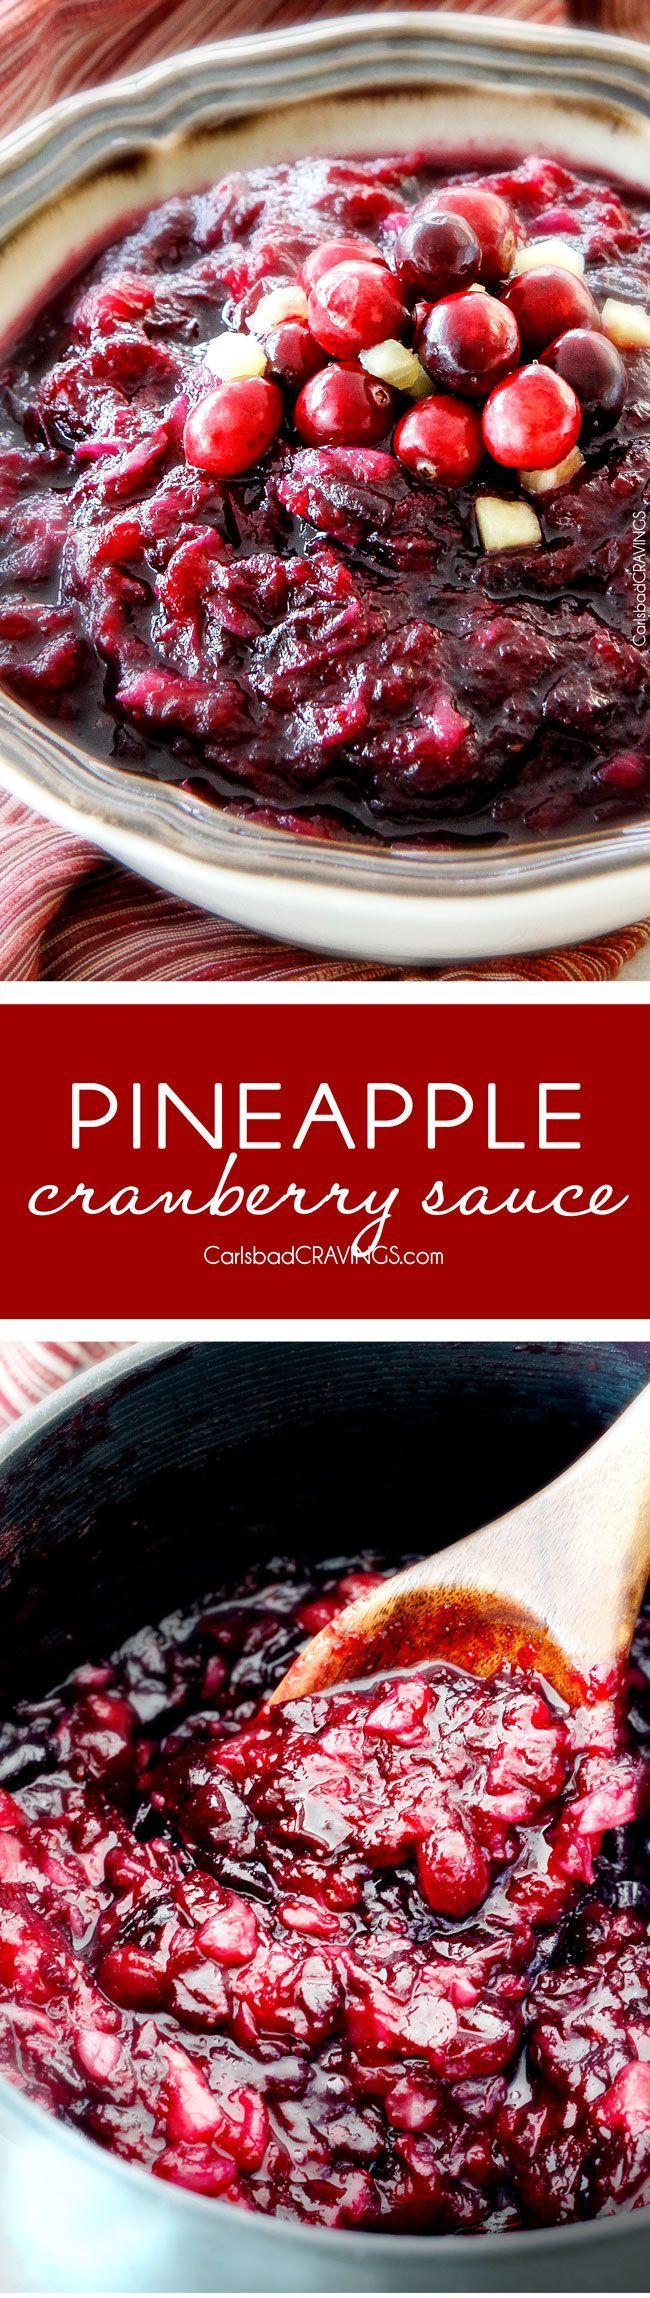 Pineapple Cranberry Sauce – so much better than canned, SO easy! and make ahead Sweet and tangy and so company rave worthy! This will be your new favorite cranberry sauce for Thanksgiving!